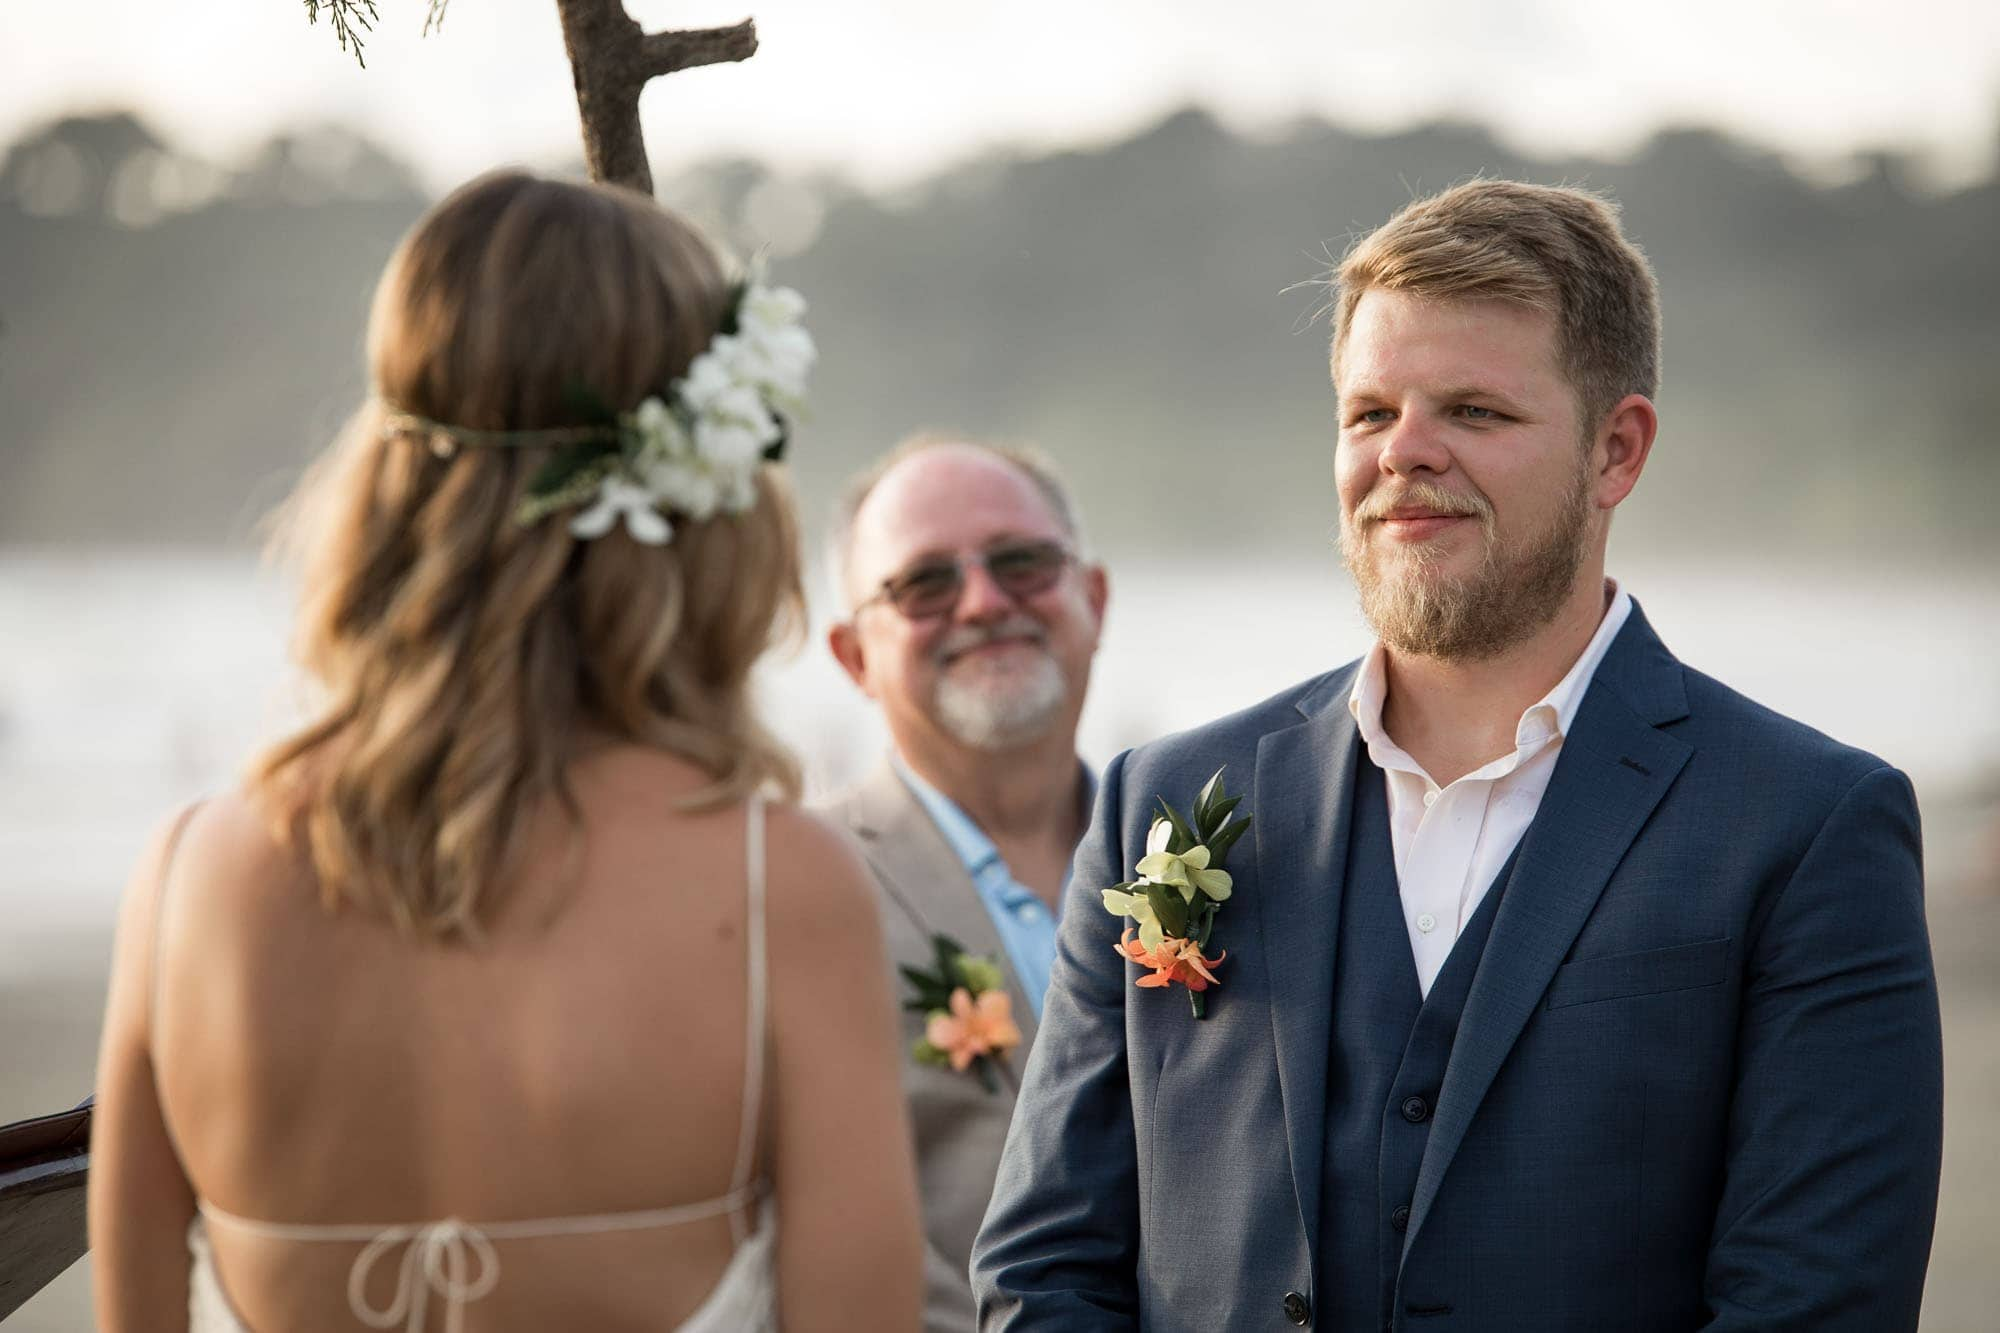 The groom with his dad behind him